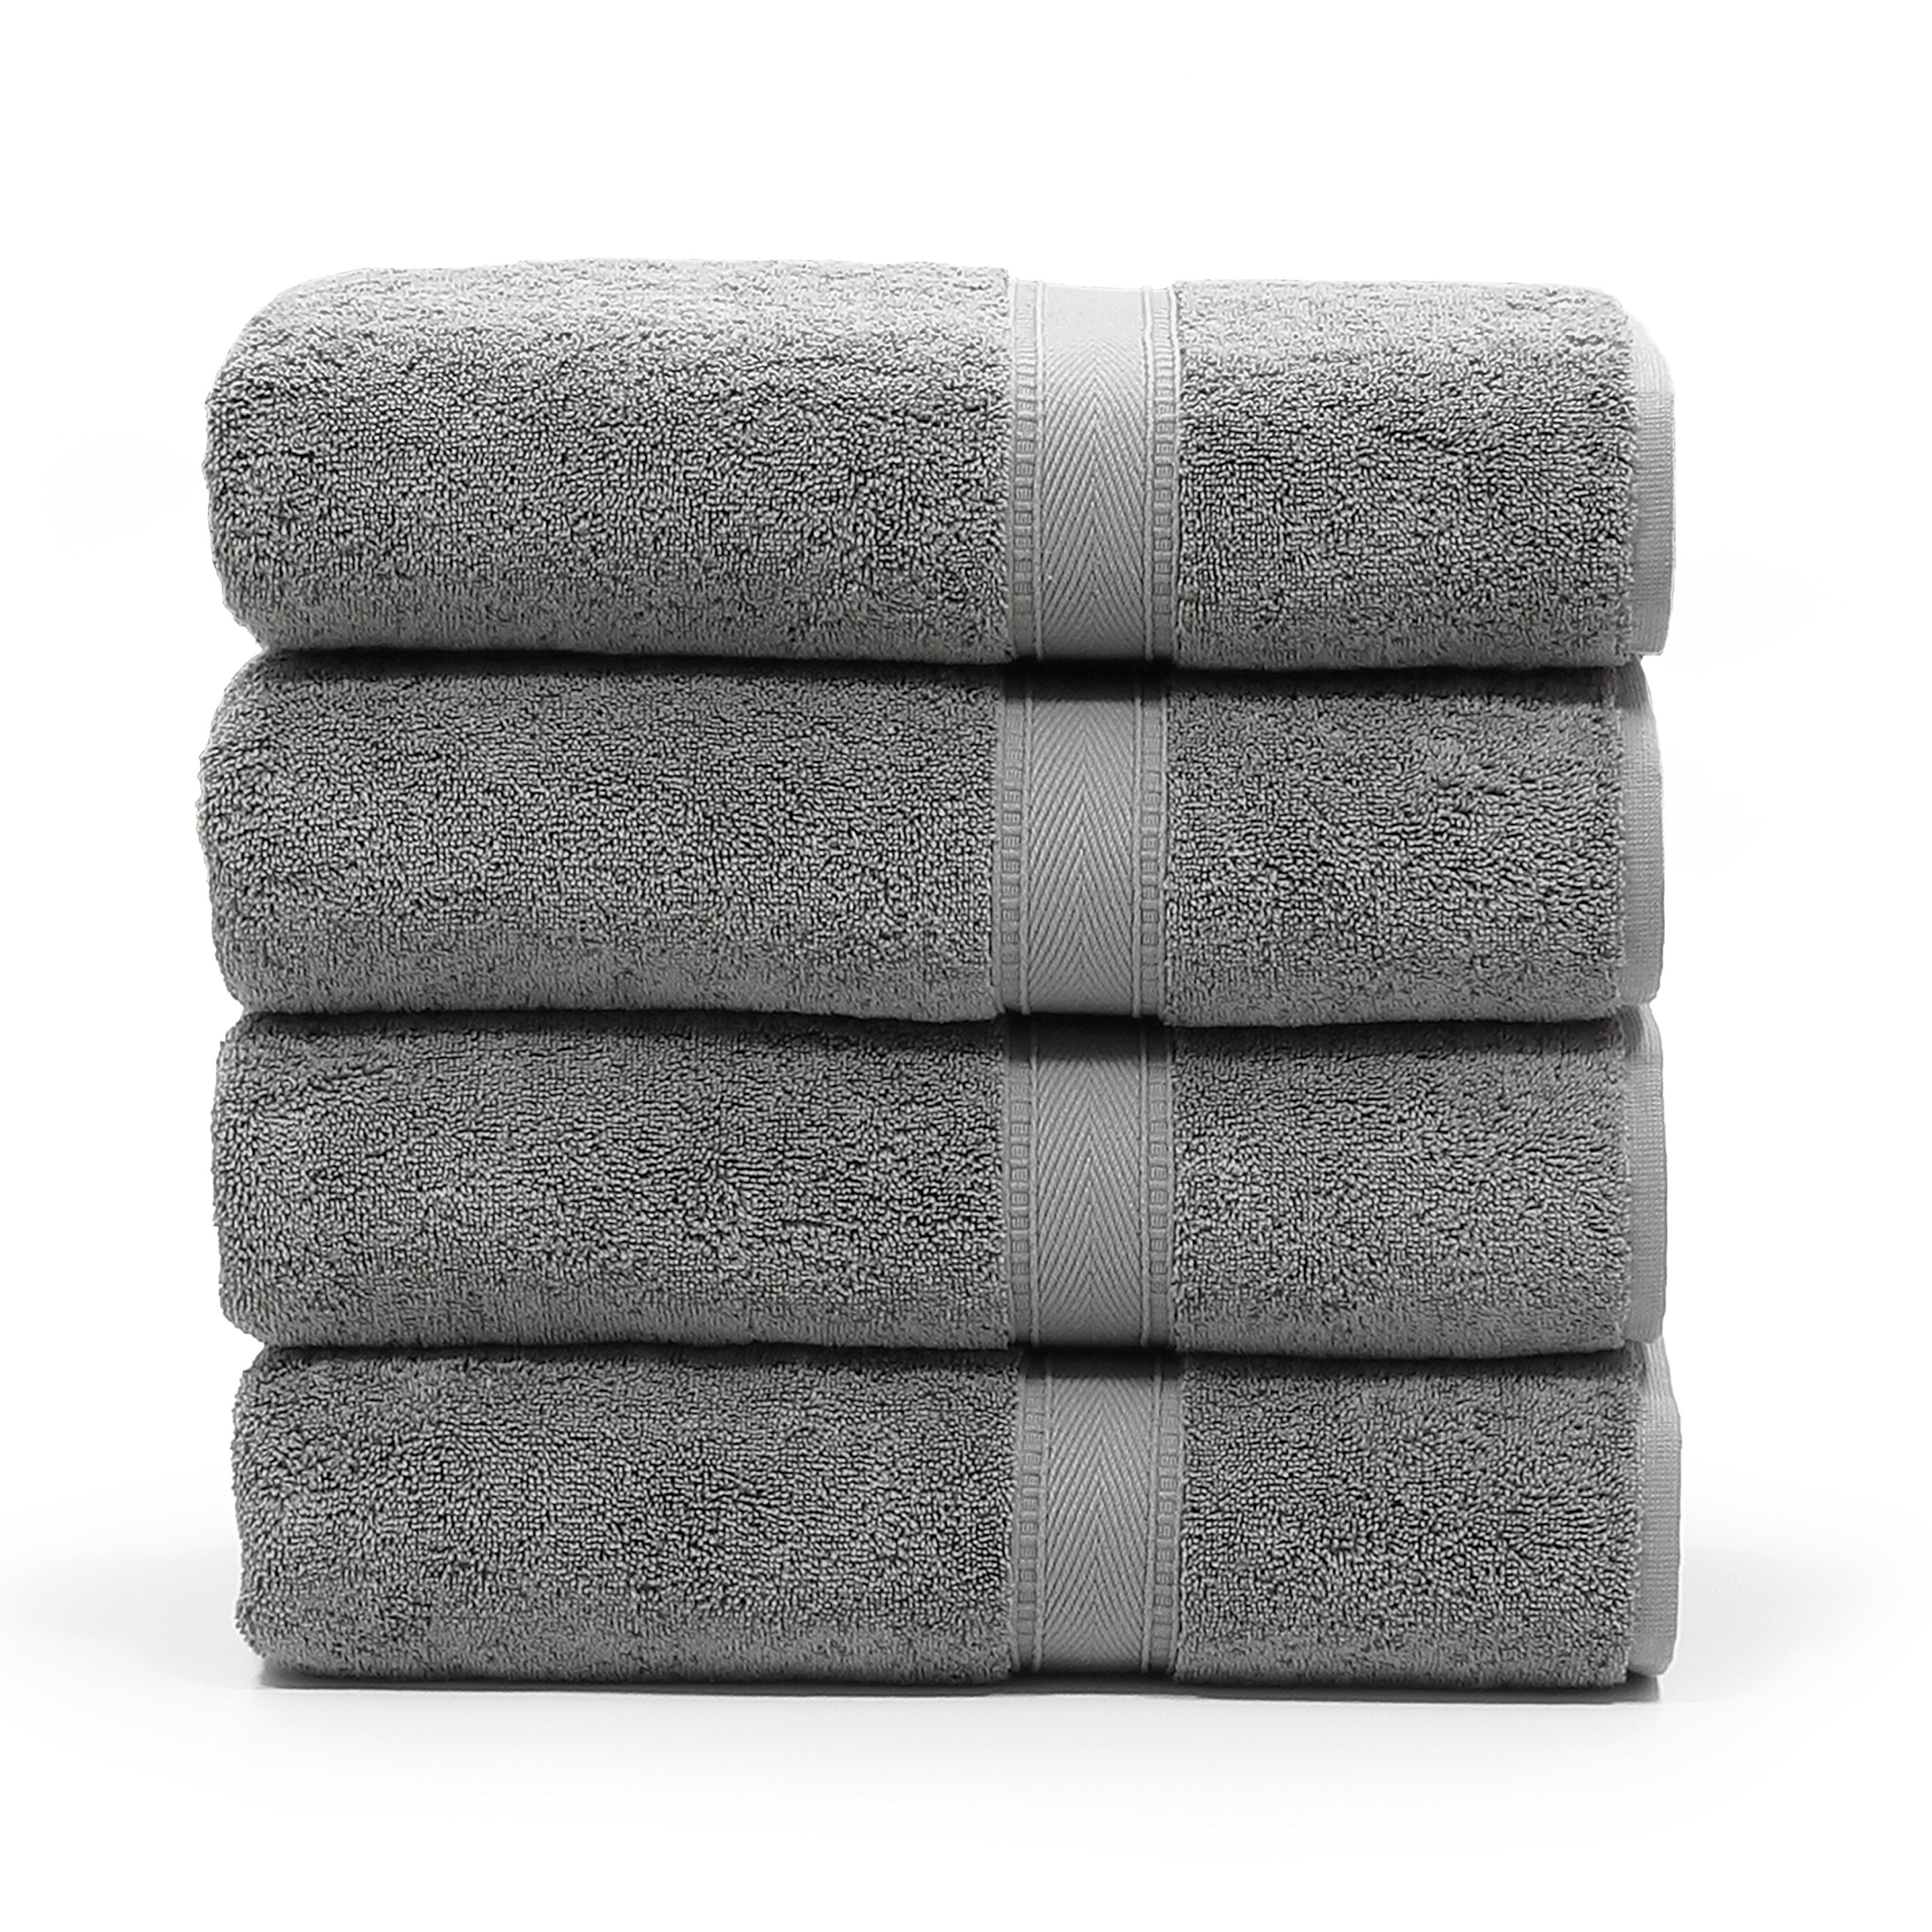 Linum Home Textiles SN96-4BT Bath Towel, Dark Grey